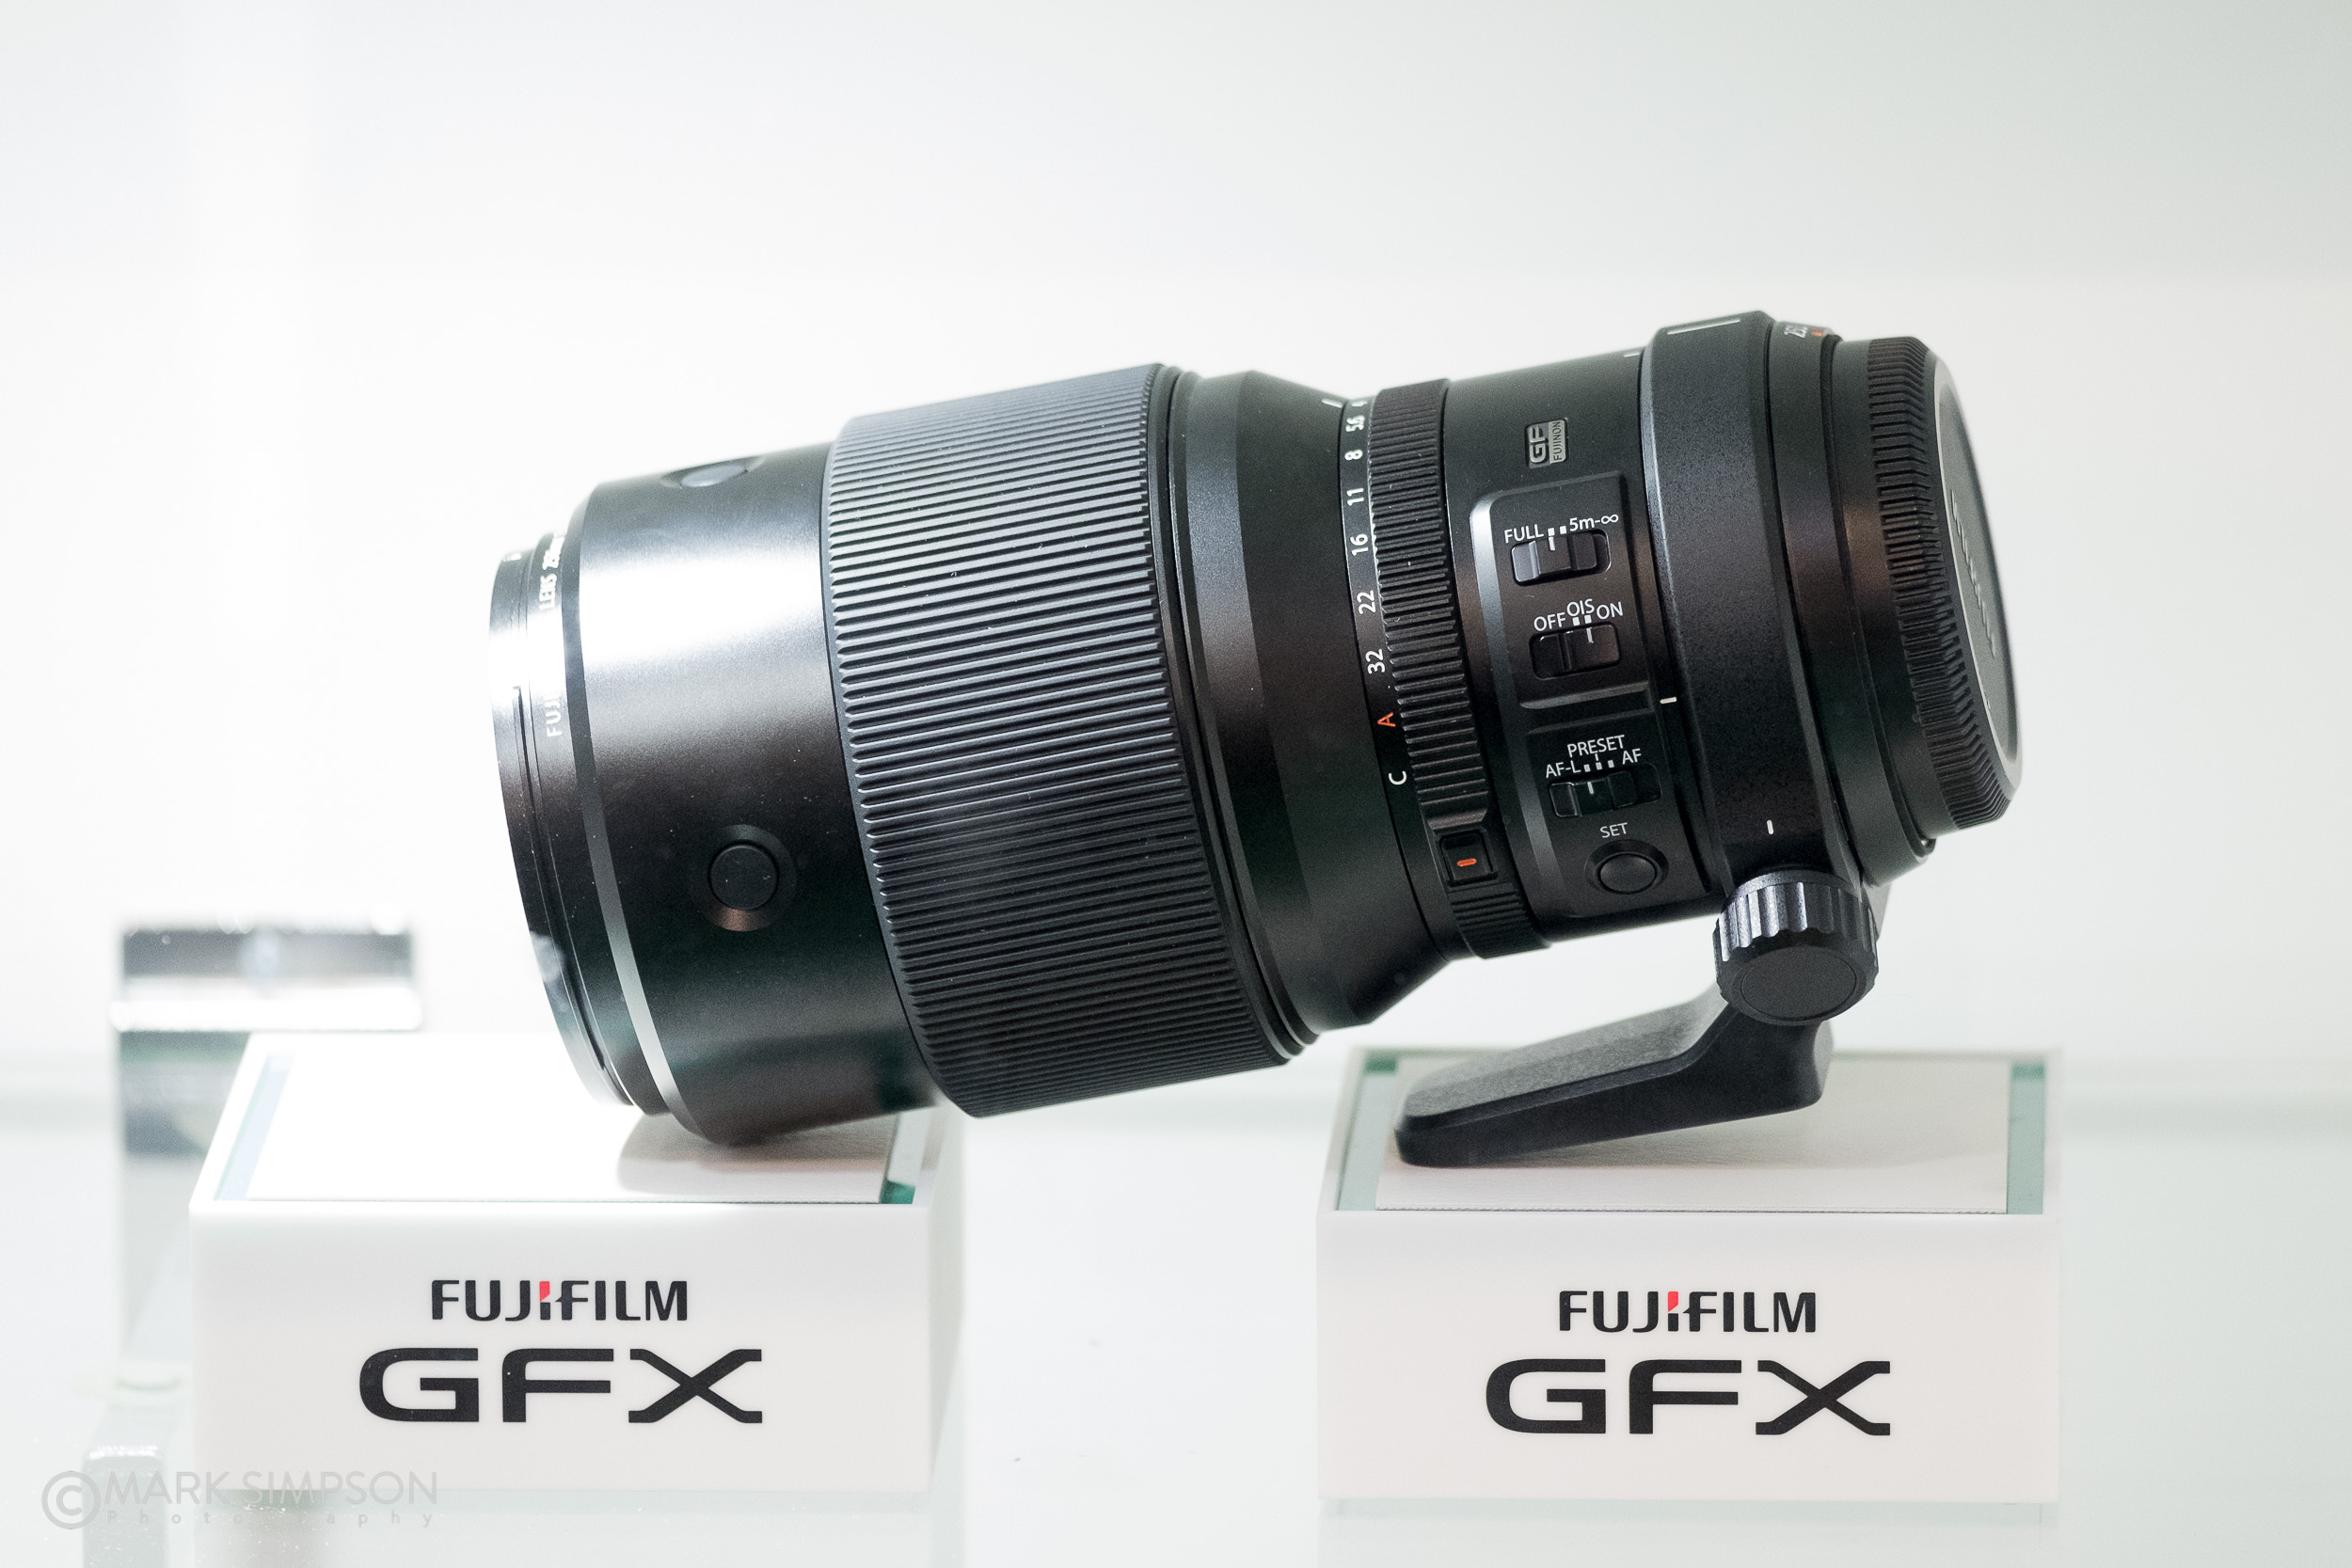 The forthcoming Fujinon GF 250mm f/4 R LM OIS WR for the GFX was tucked away in the corner of a display cabinet. (FujiFilm X-H1, Fujinon 50-140mm f2.8 WR OIS XF, 1/105 @ f/2.8, ISO 3200)